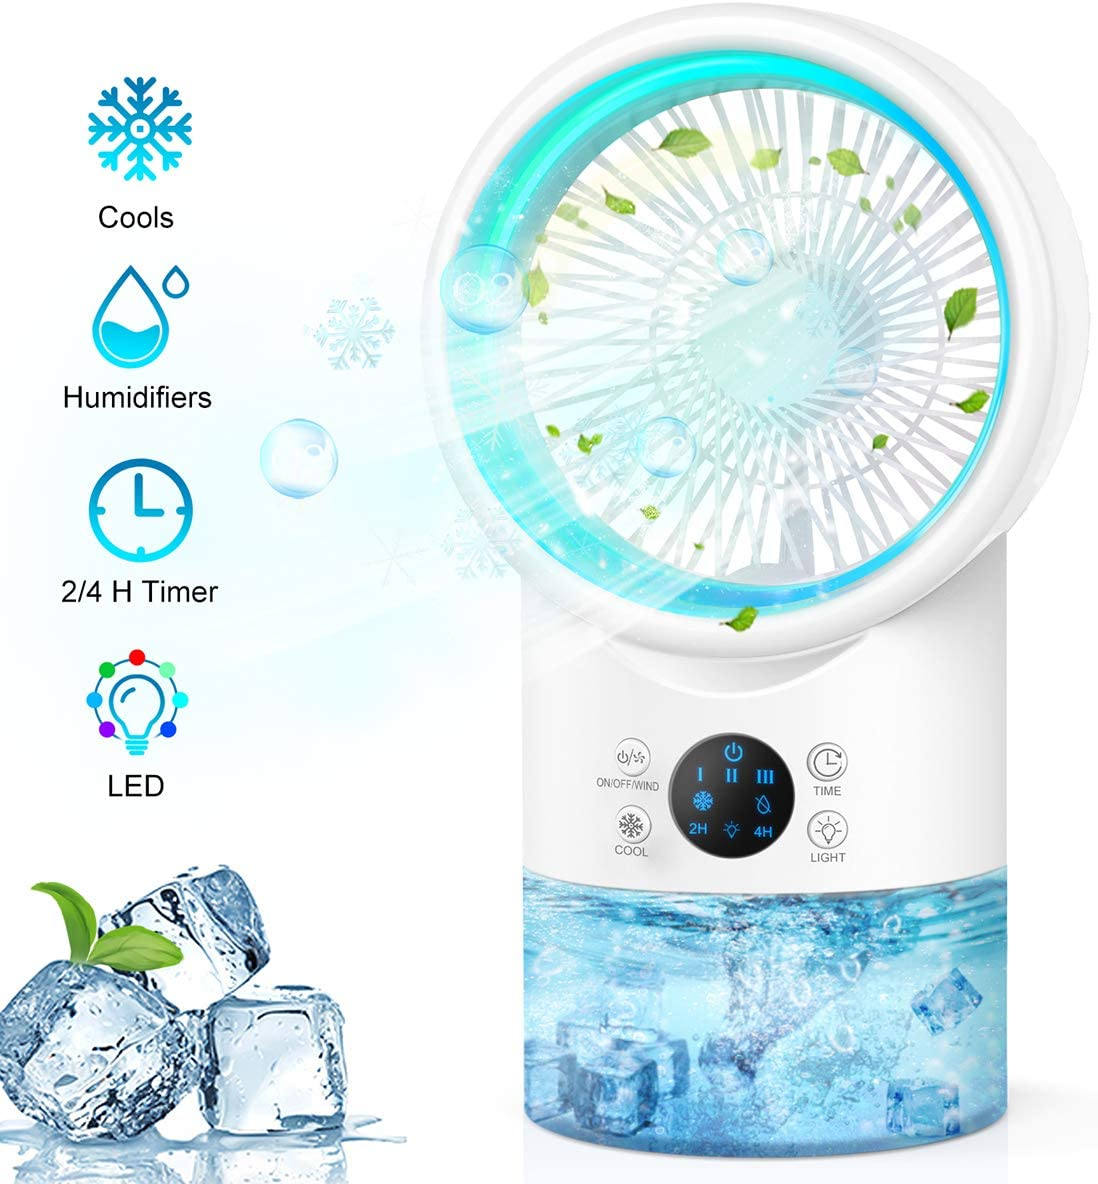 Portable Air Conditioner Fan, Personal Evaporative Air Cooler Super Quiet Desk Fan Mini Air Cooler with 7 Colors LED Light, 3 Speeds, Air Circulator Humidifier Misting Fan for Home Office Room